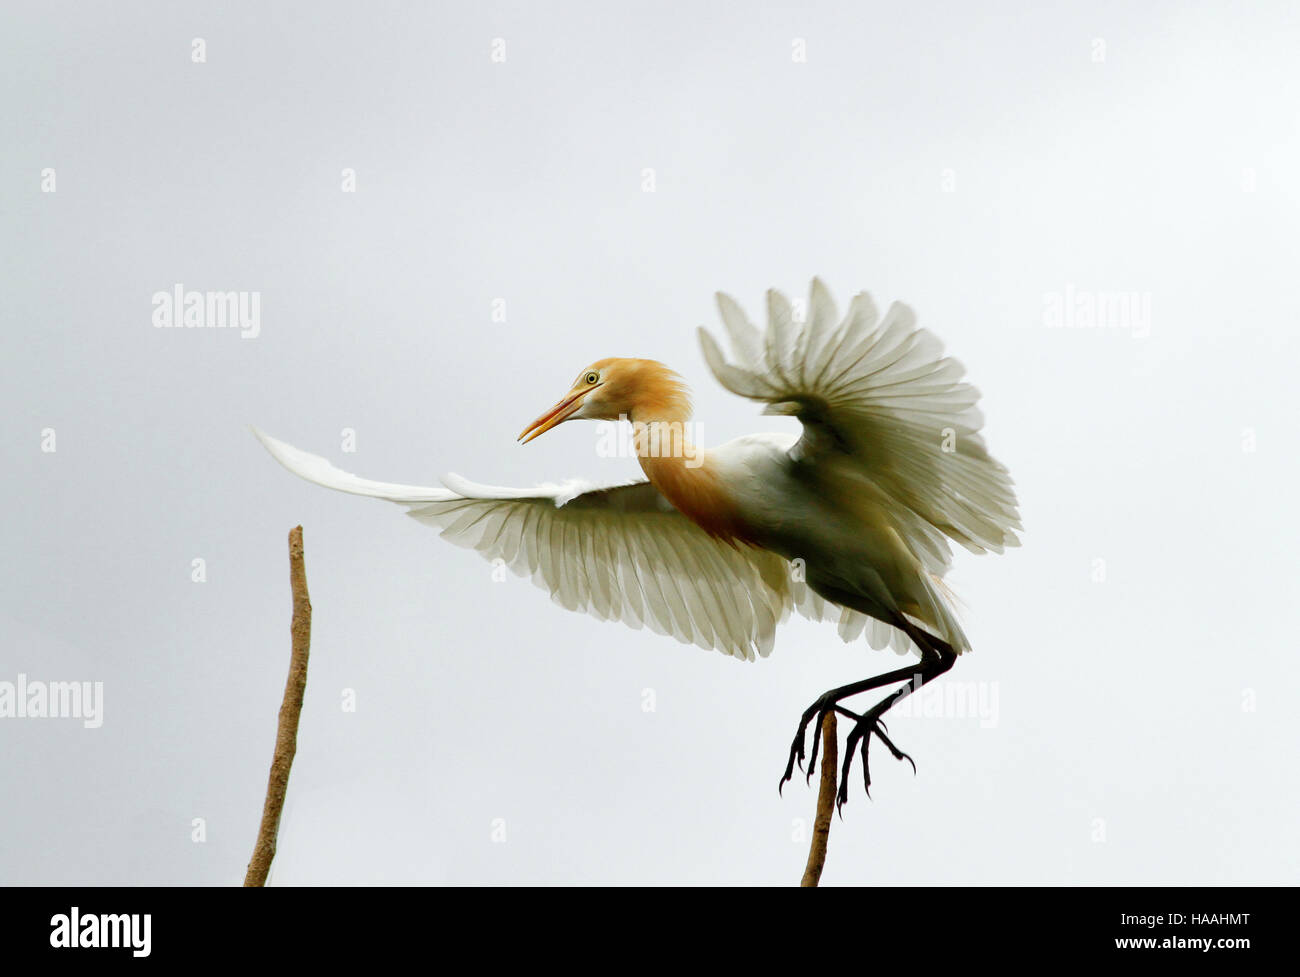 An egret caught in the moment of lift-off. Taken at Baras Bird Sanctuary, Tacurong, Sultan Kudarat province. - Stock Image